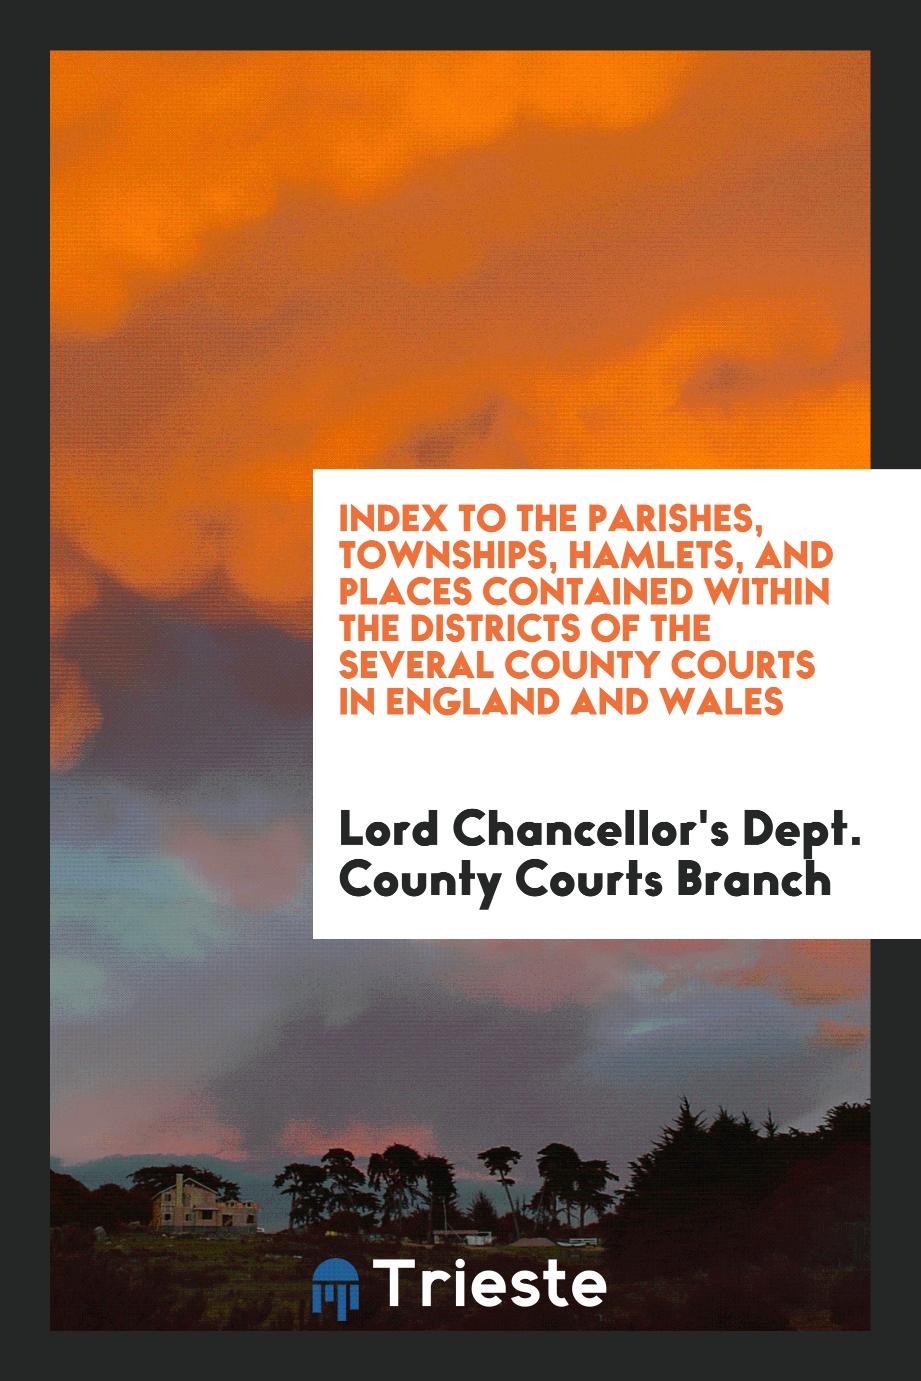 Index to the Parishes, Townships, Hamlets, and Places Contained within the Districts of the Several County Courts in England and Wales